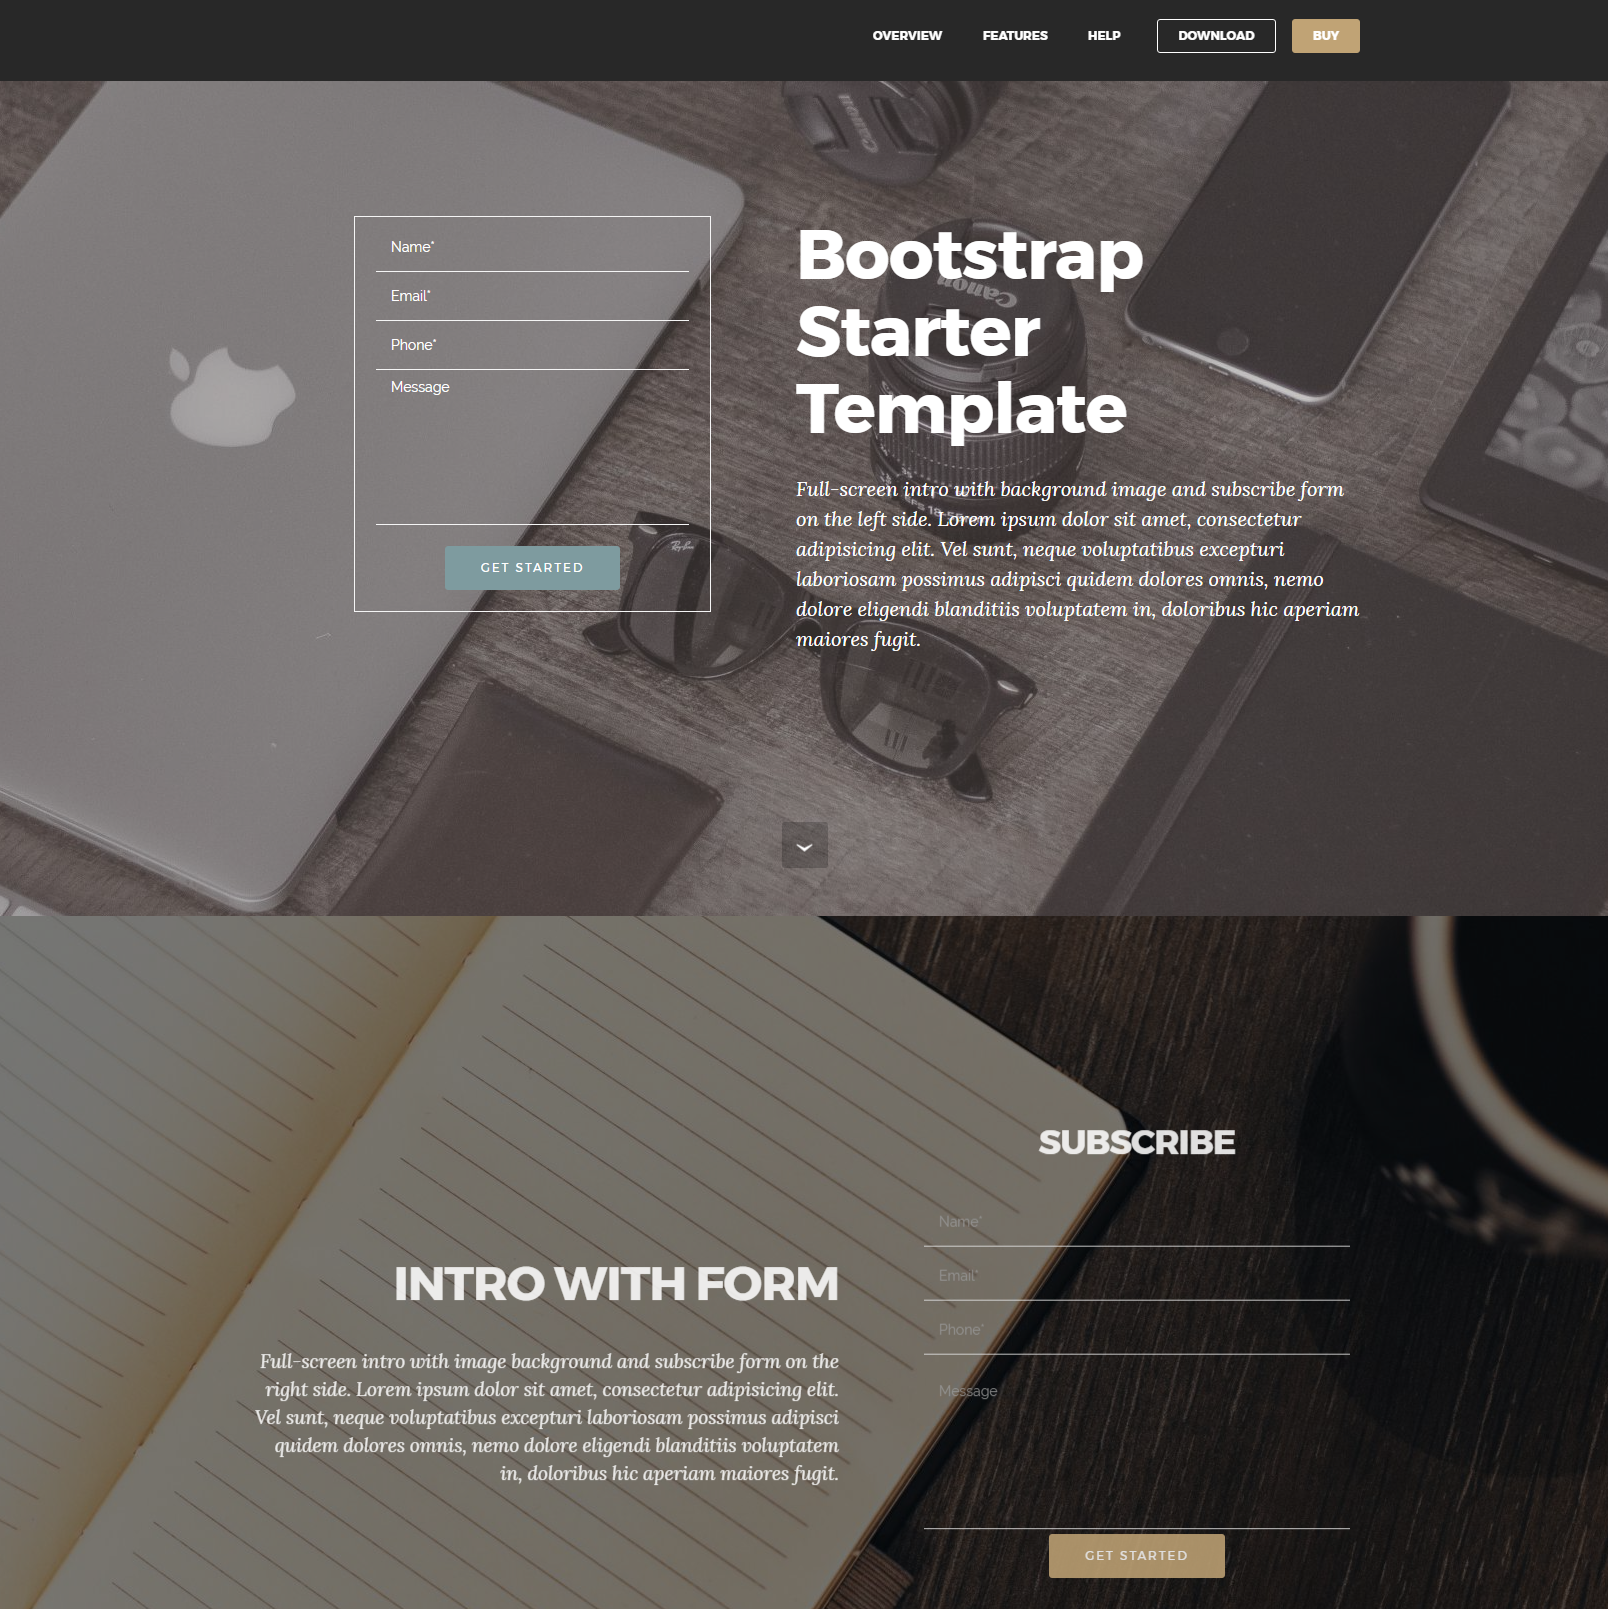 Free Download Bootstrap Starter Templates